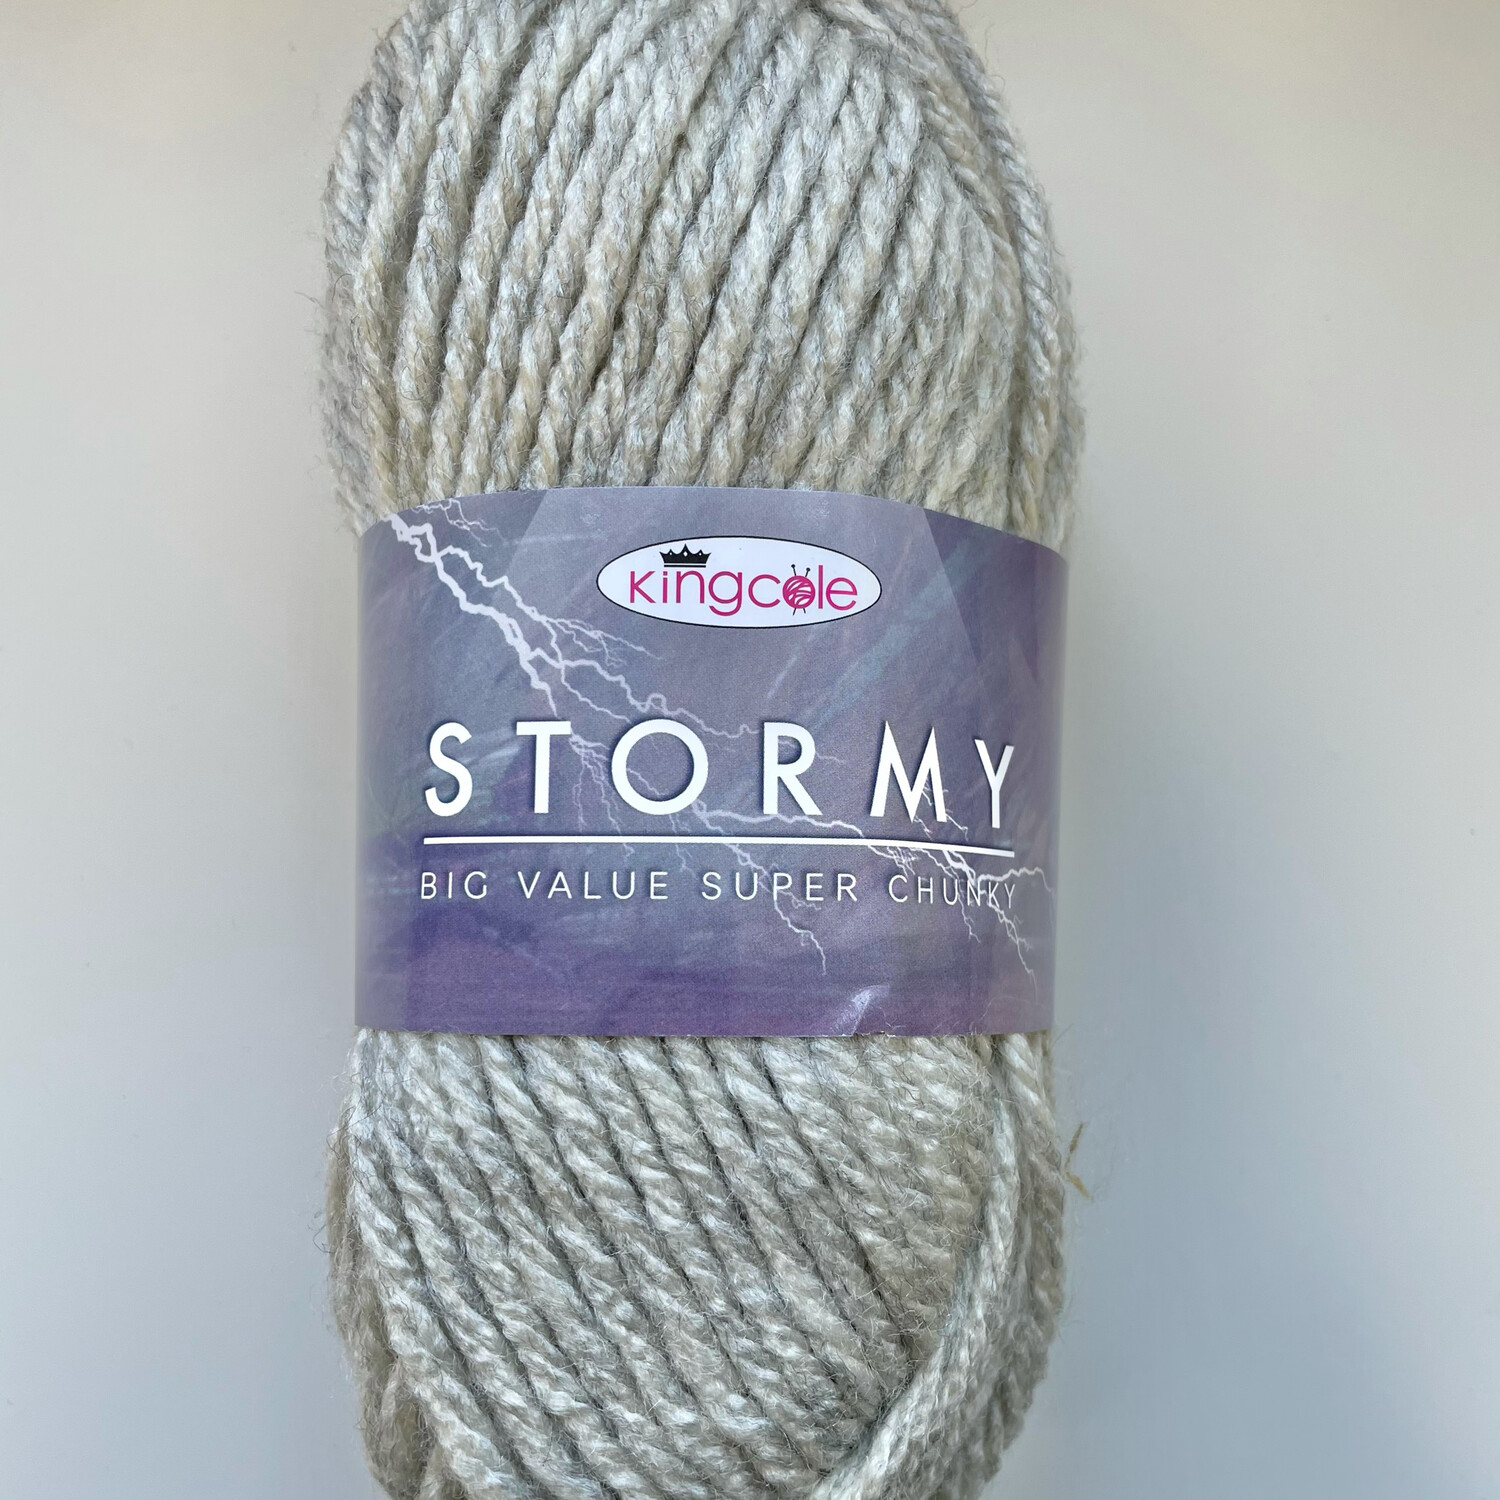 King Cole Big Value Super Chunky Stormy - Hail